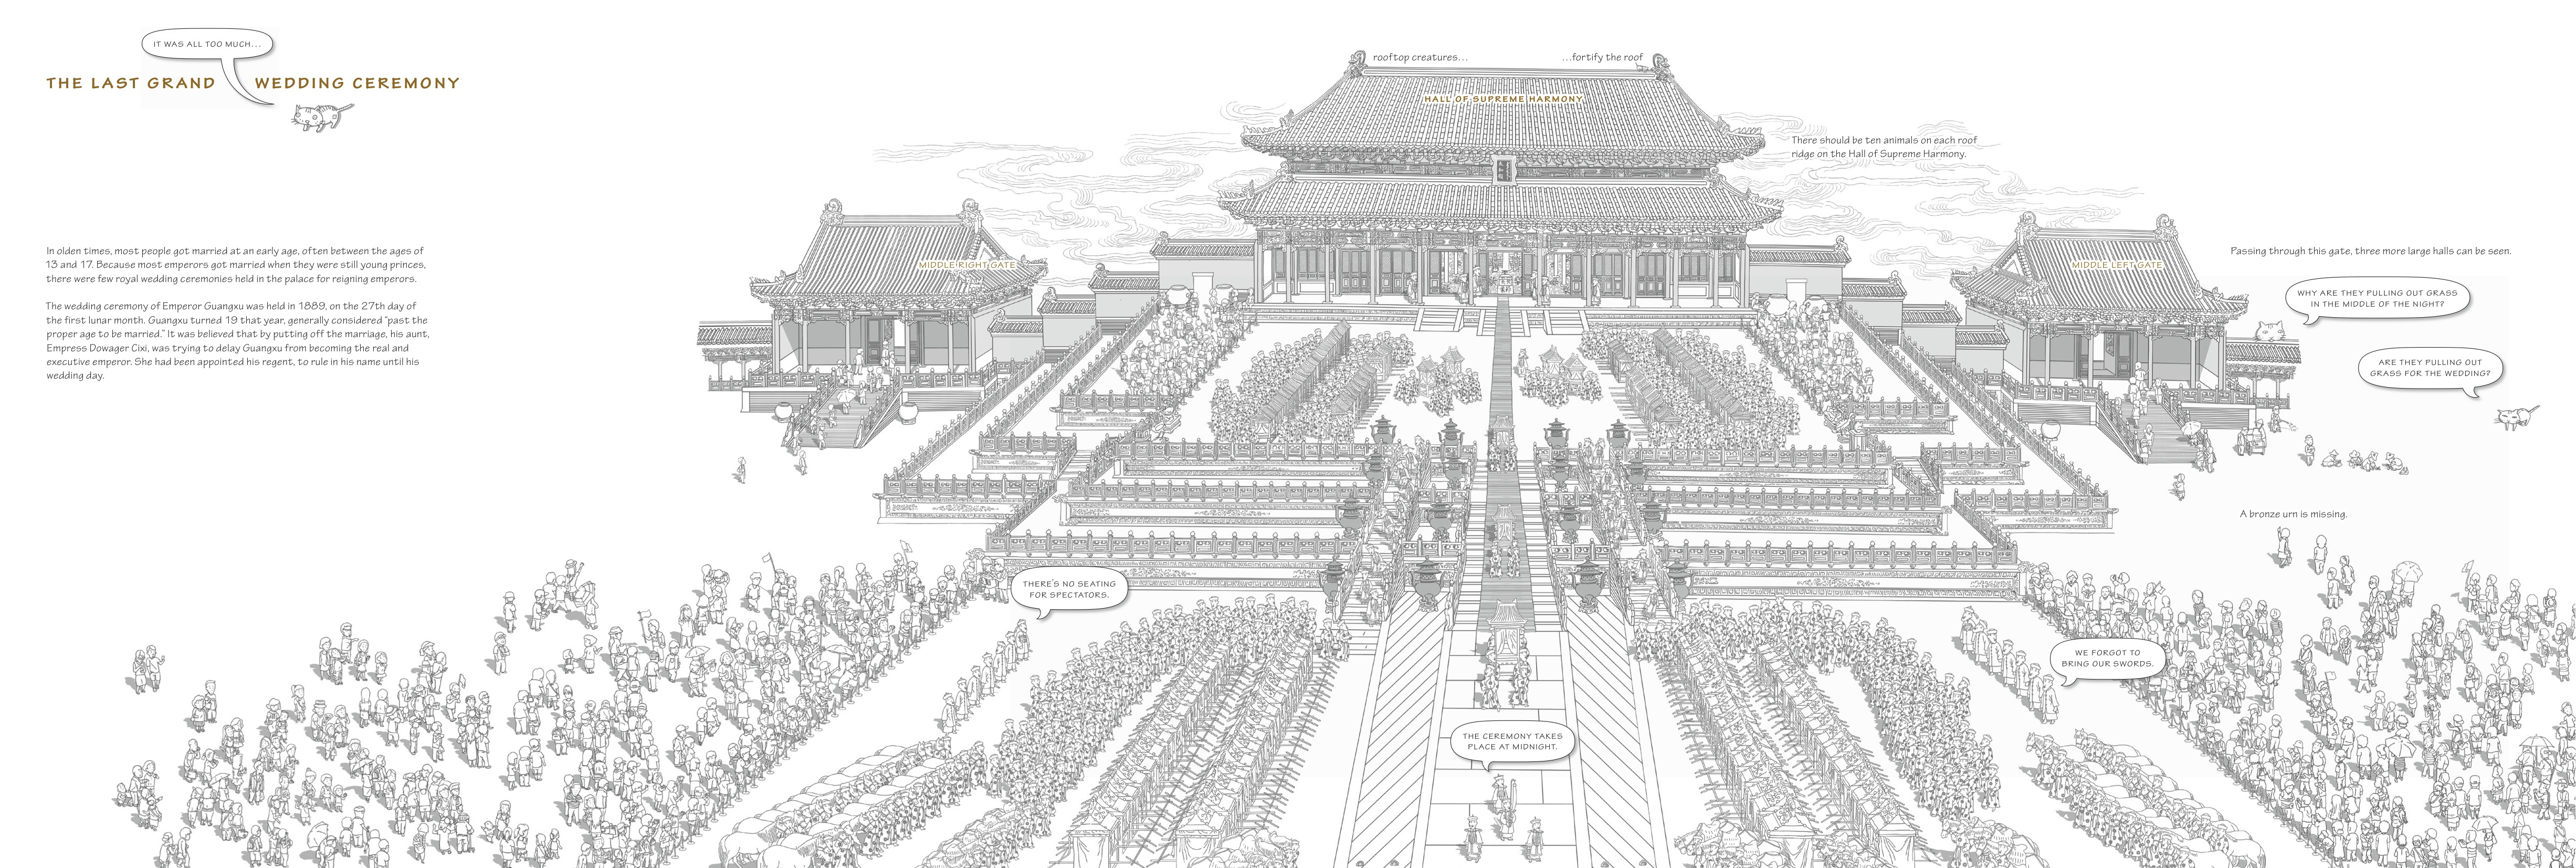 Drawn palace forbidden city In by ceremony wedding the